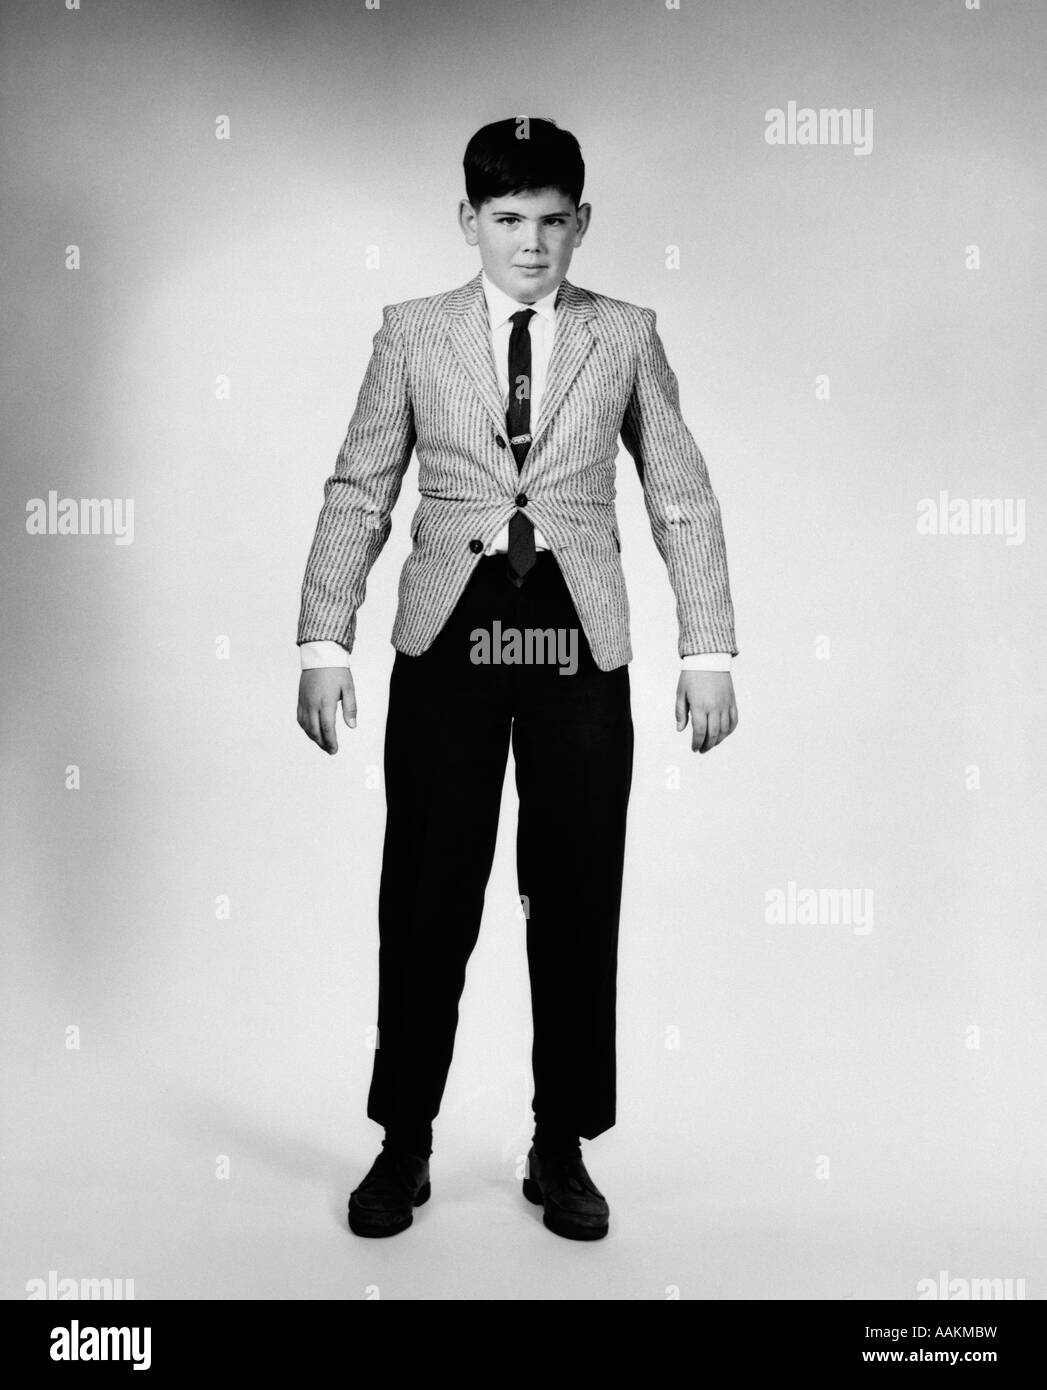 1950s 1960s OVERGROWN BOY IN TOO TIGHT SPORTS JACKET AND PANTS LOOKING AT CAMERA Stock Photo